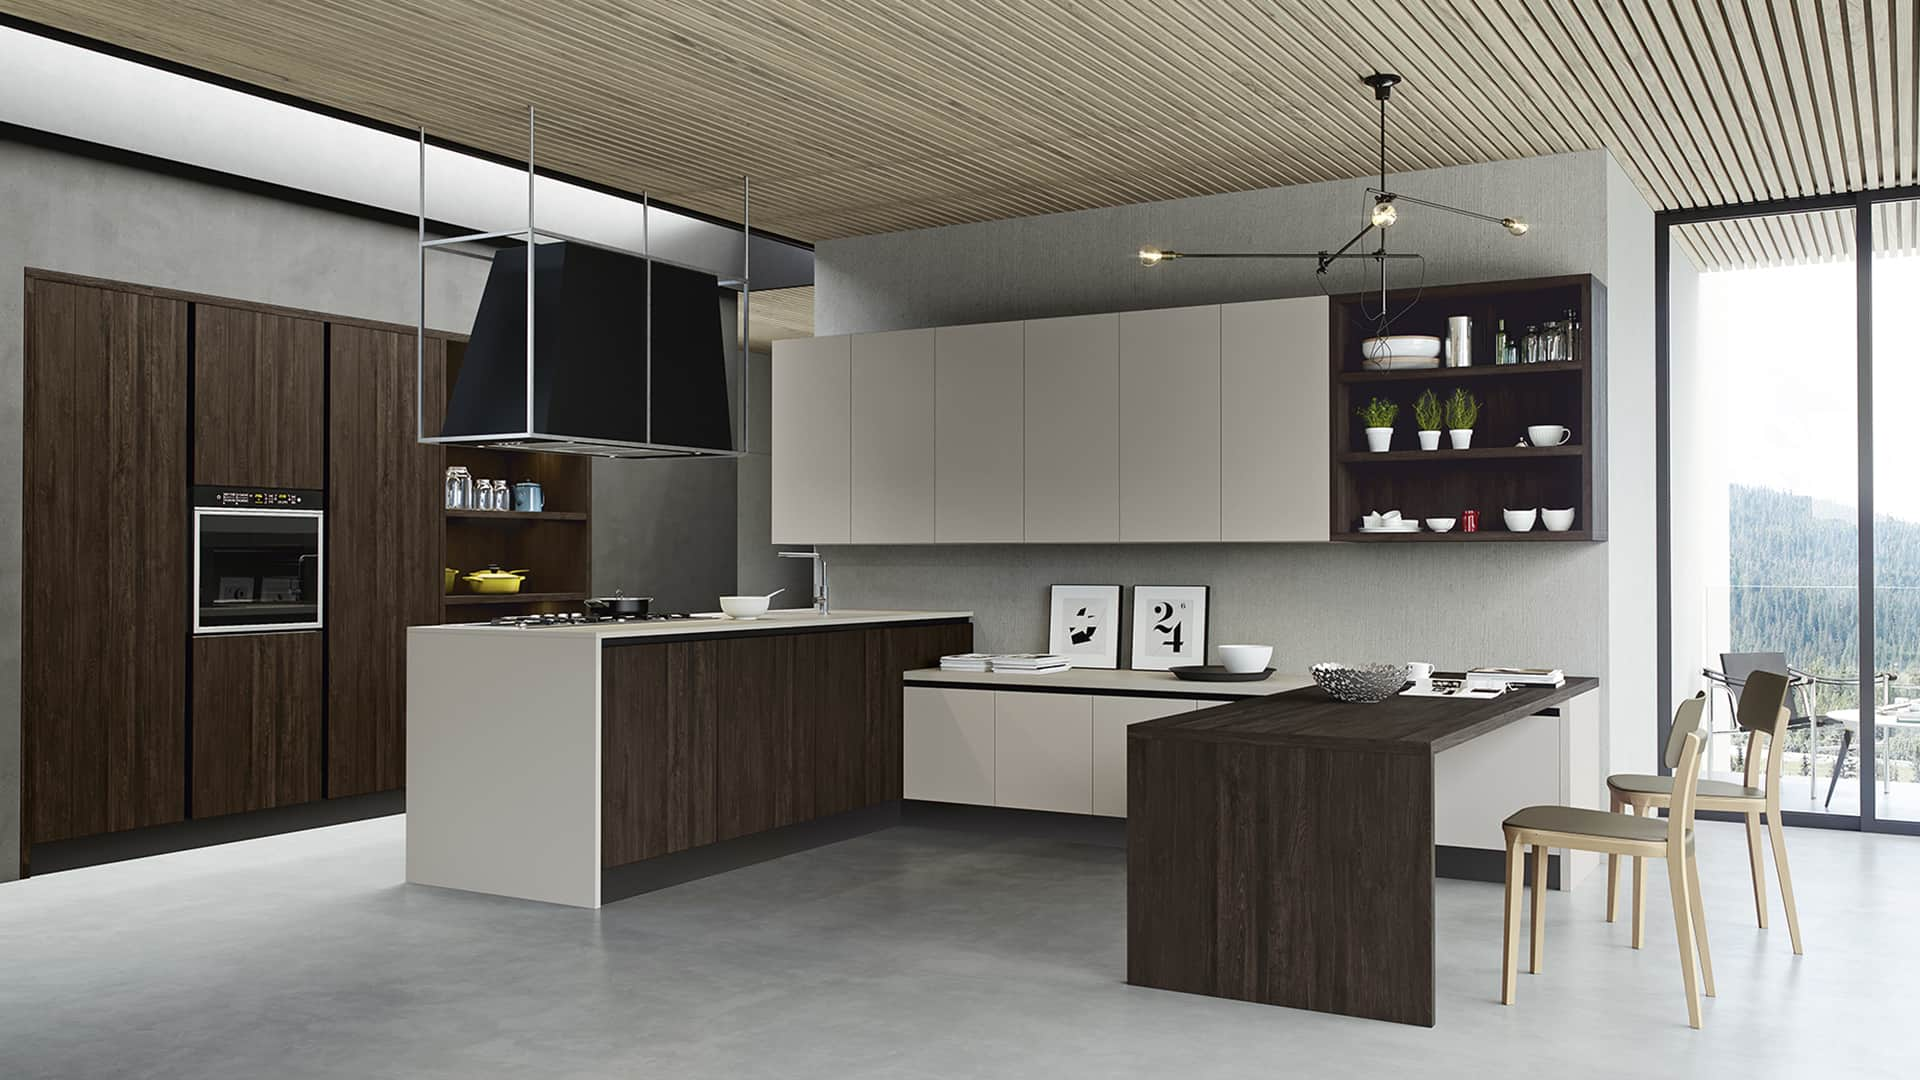 Cucine moderne padova ~ canlic for .